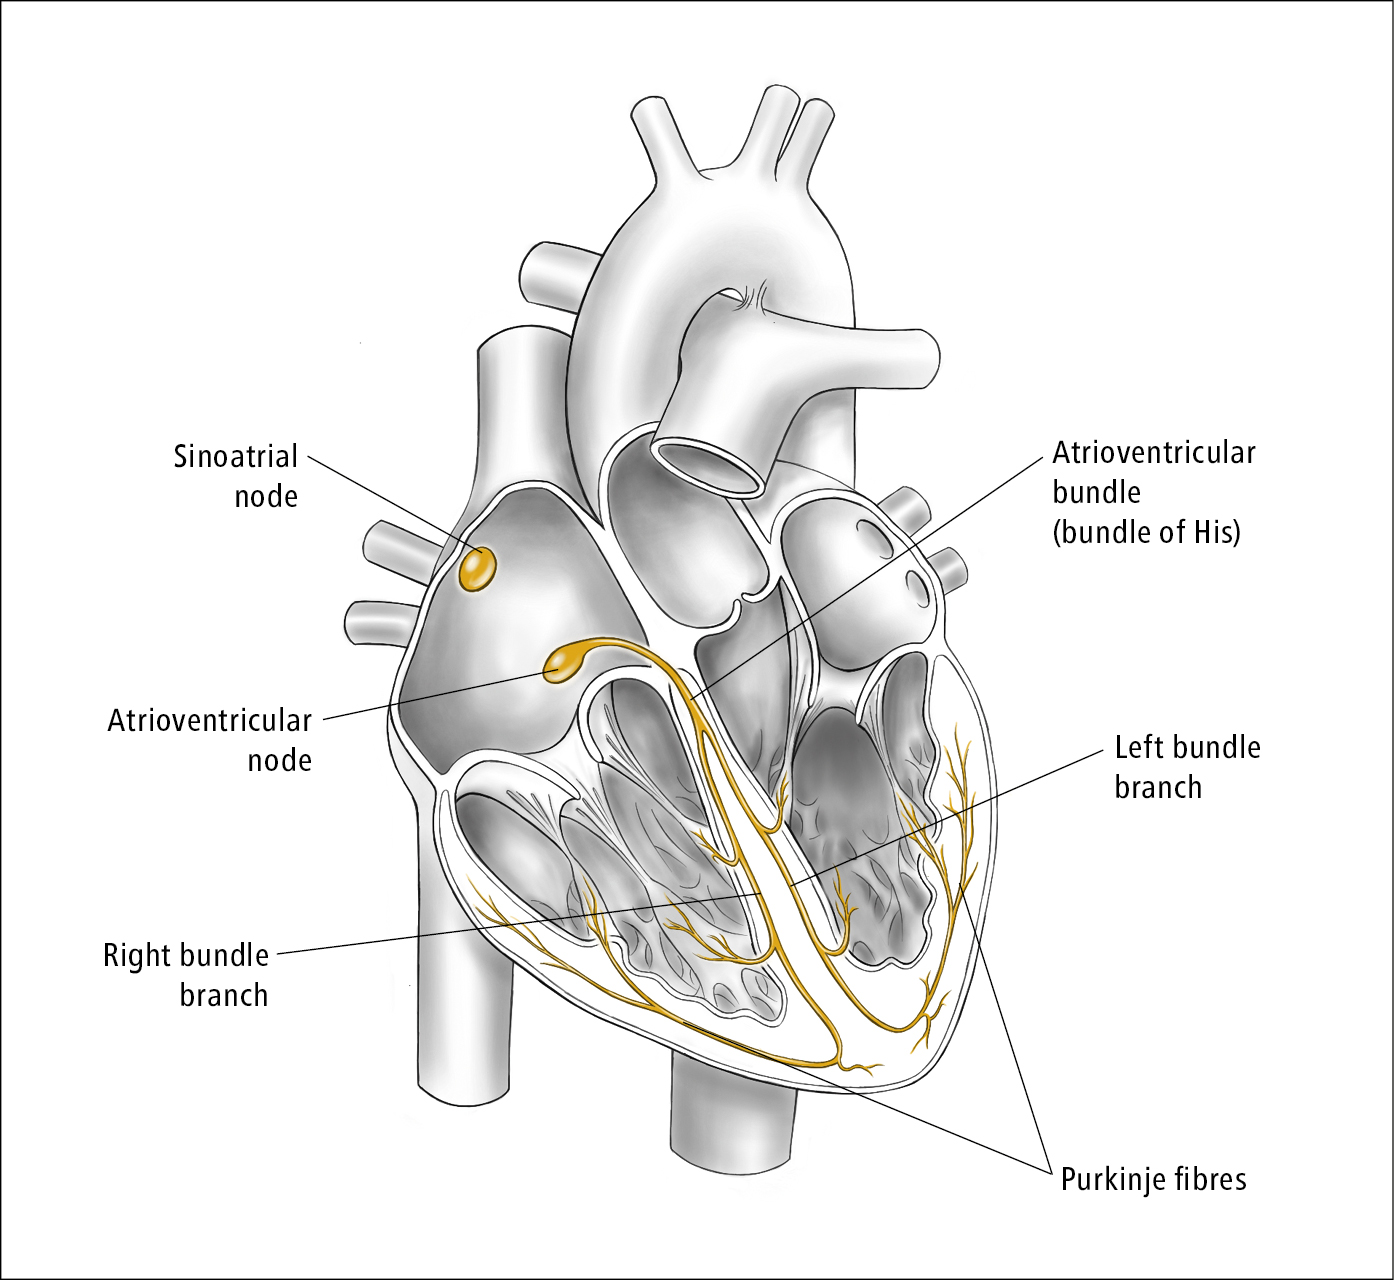 Figure 031_6254.  Cardiac conduction system.  Illustration courtesy of Dr Shannon Zhang.